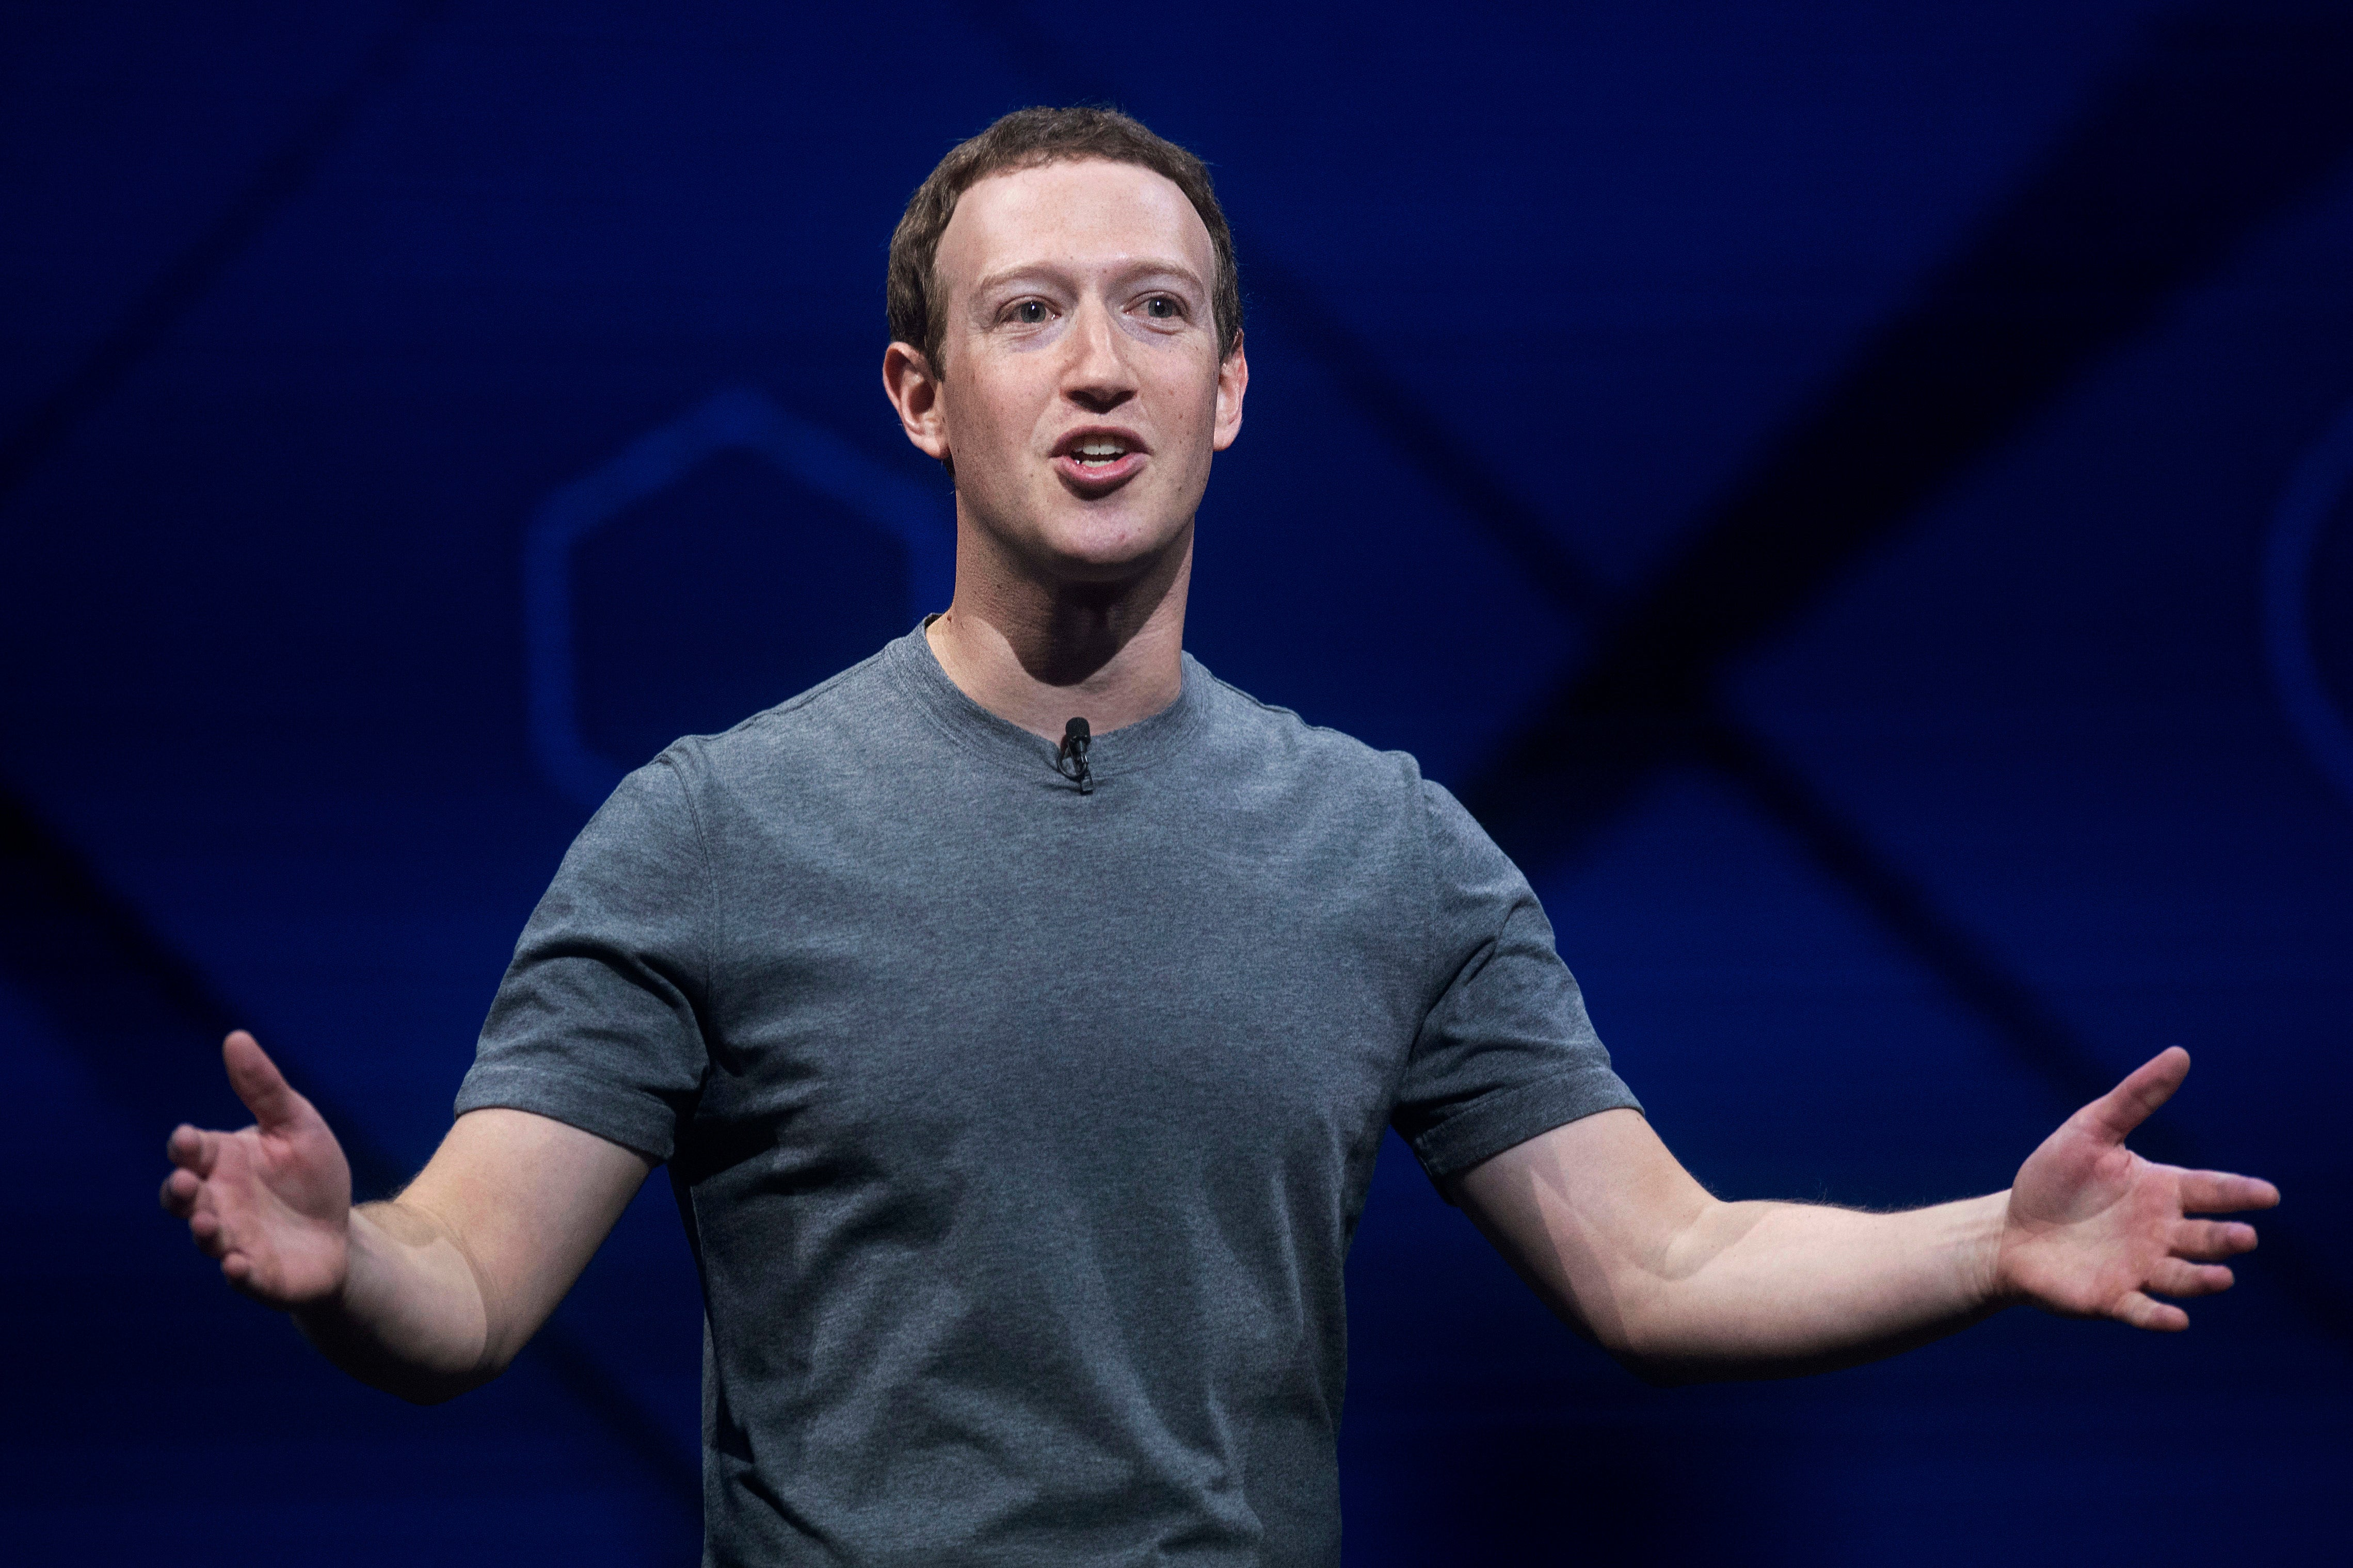 Facebook says it will act against 'information operations' using false accounts